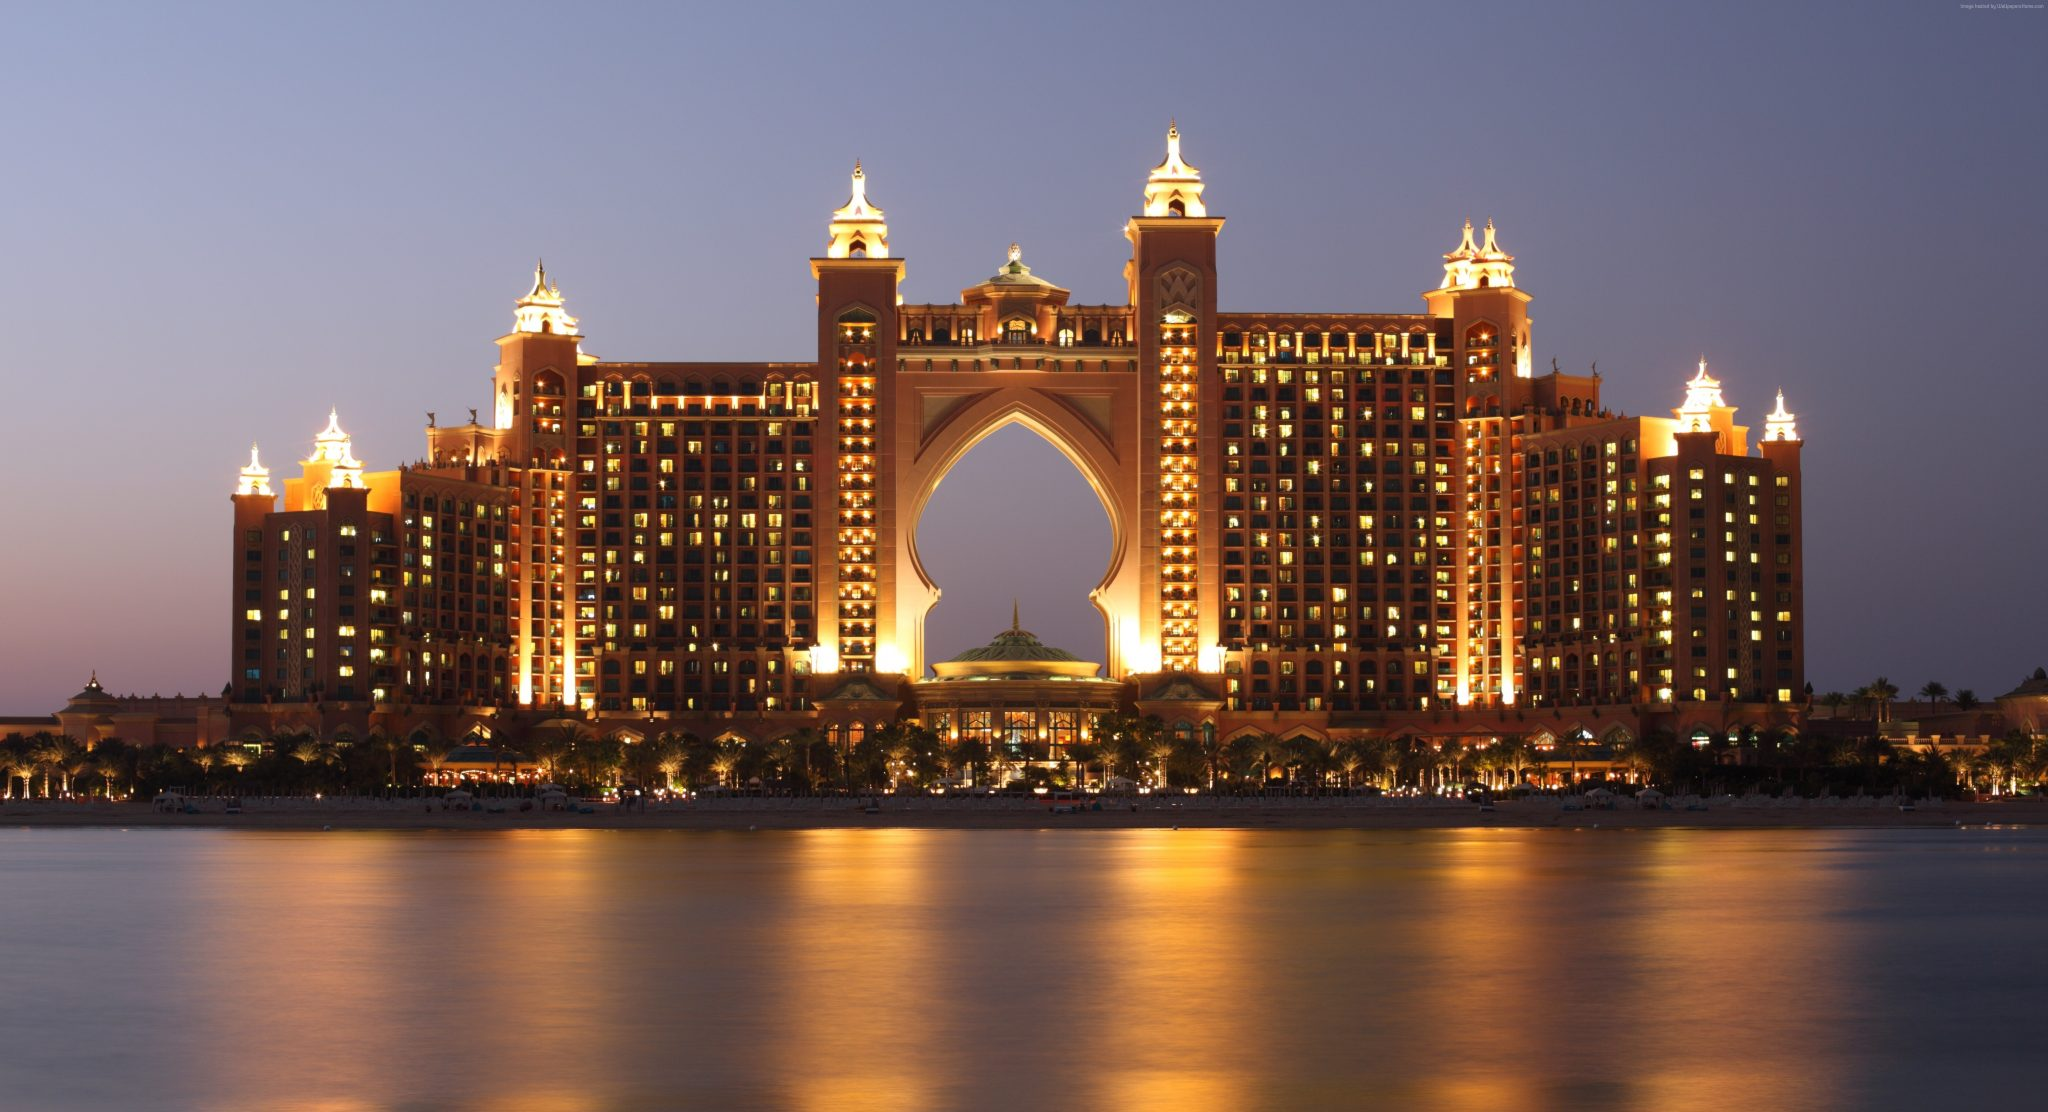 The Palm Atlantis Dubai